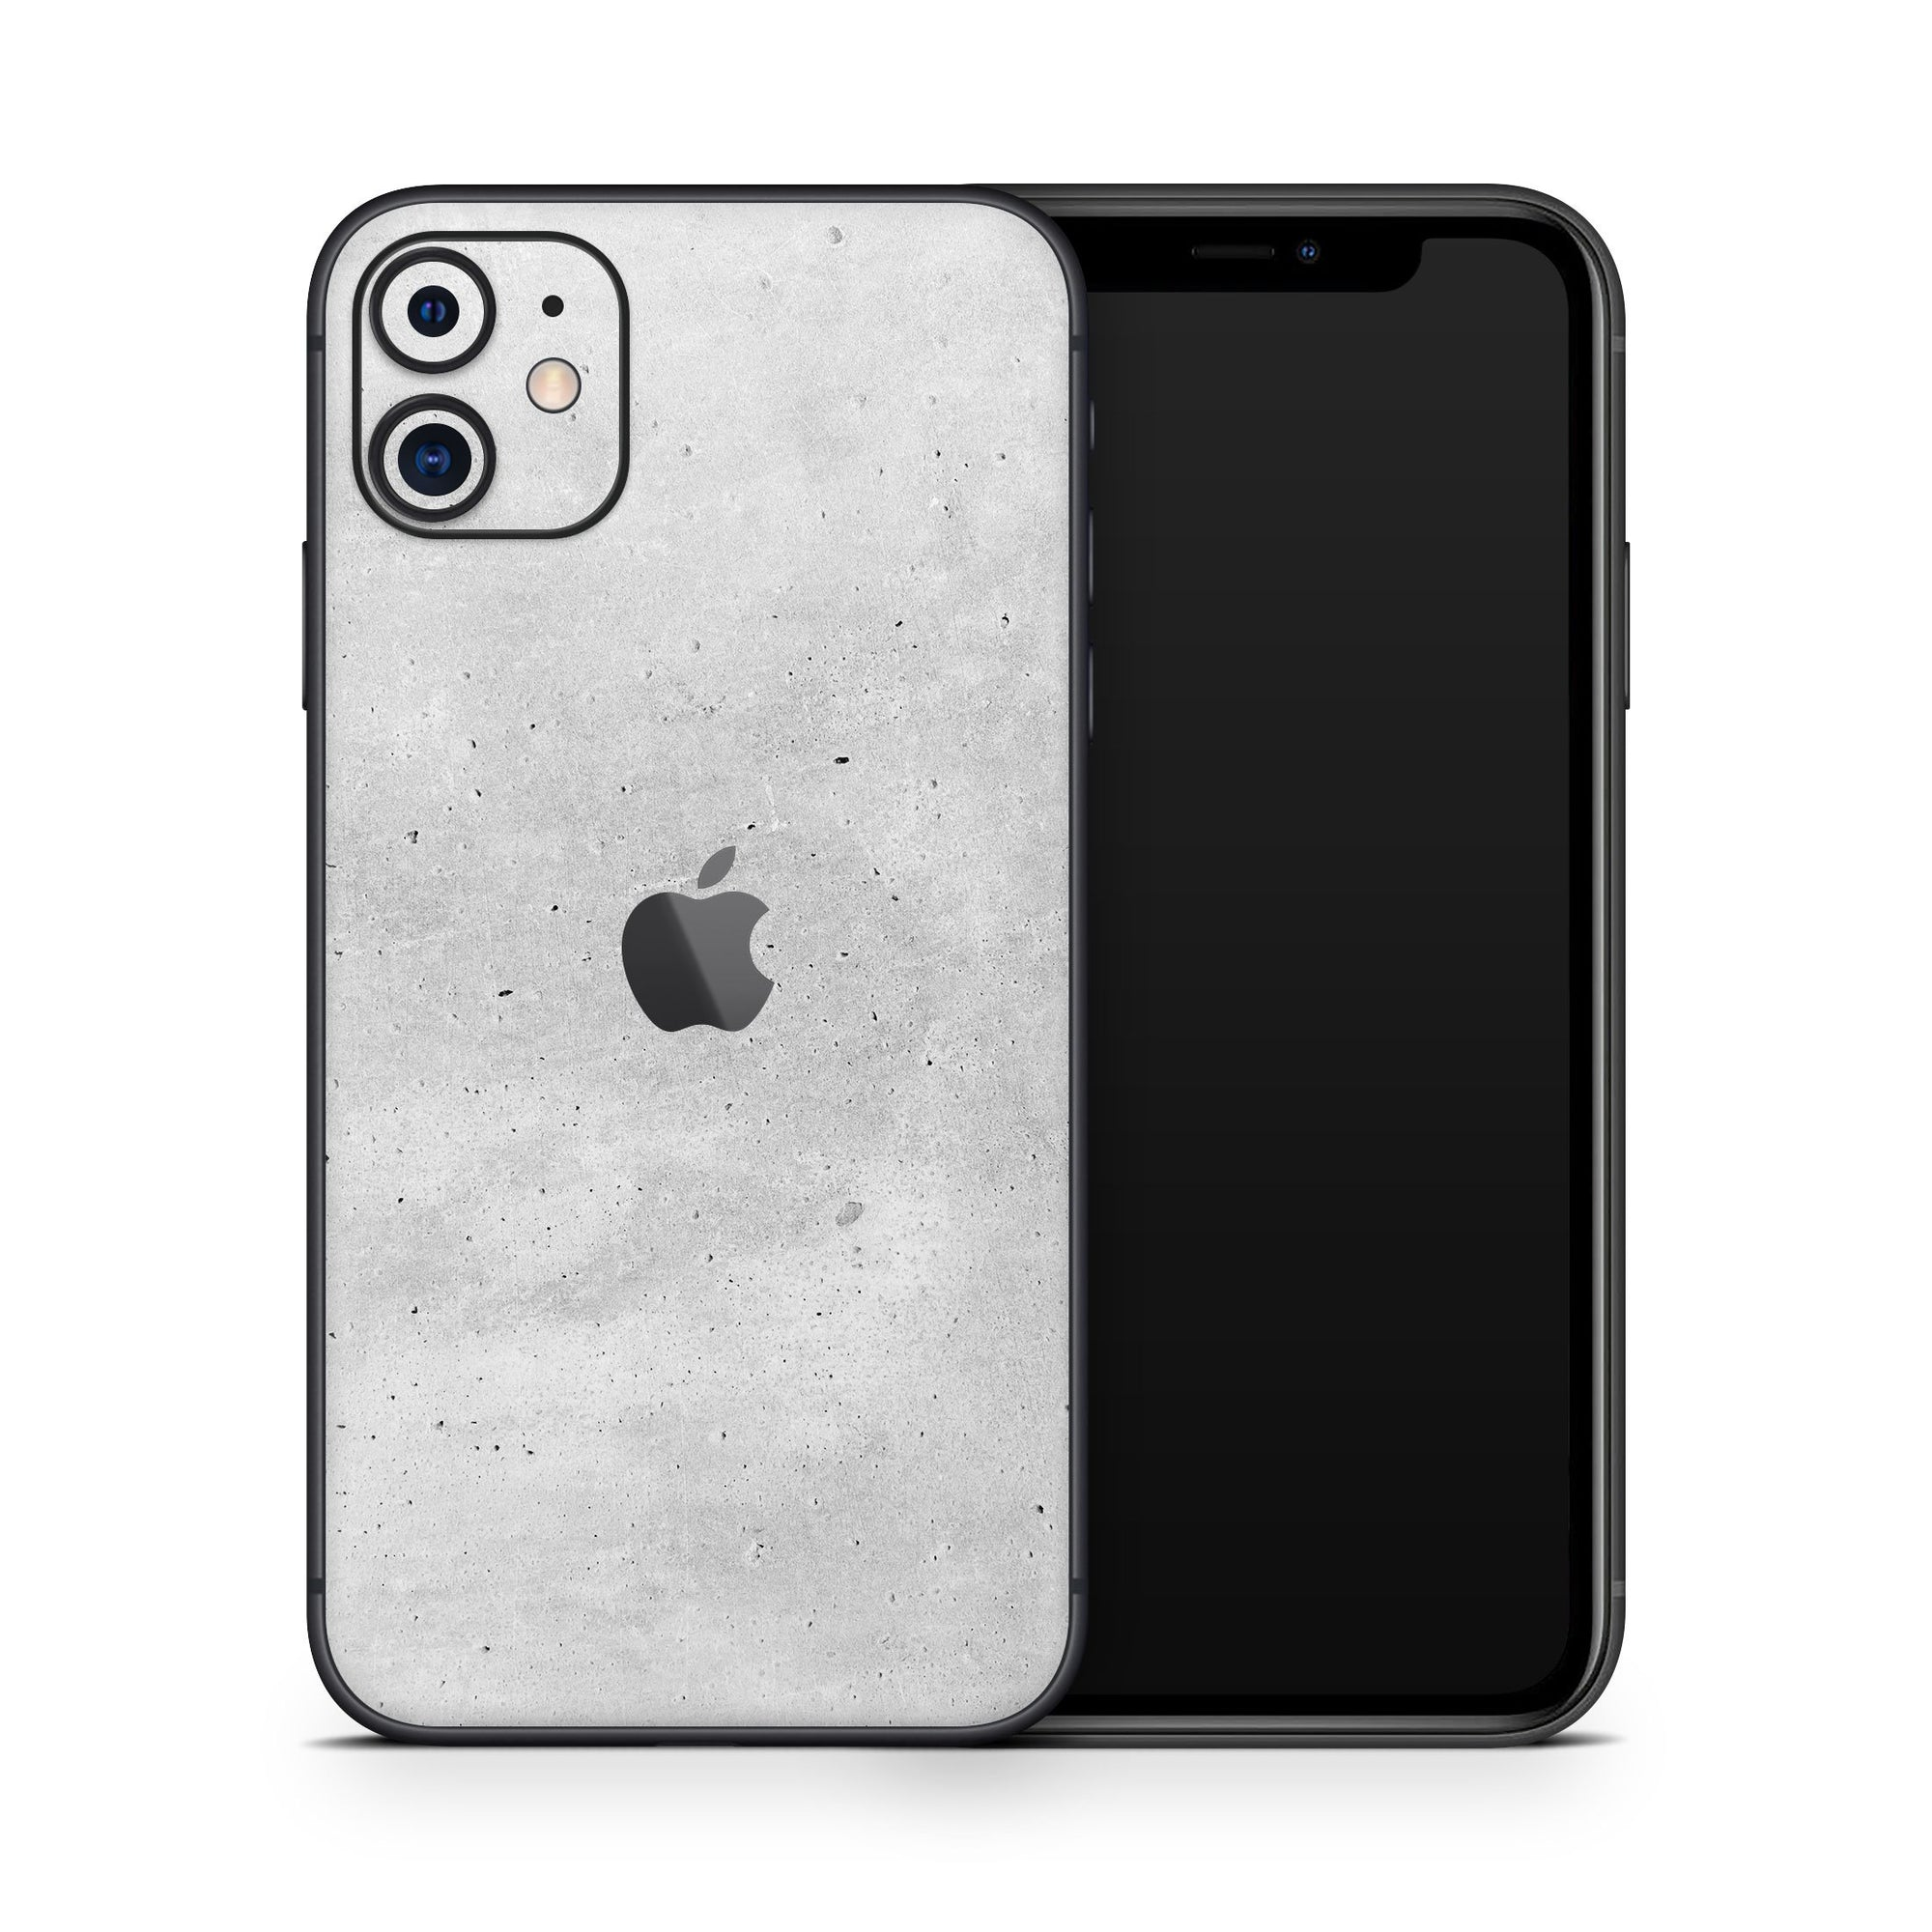 Concrete Skin iPhone 11